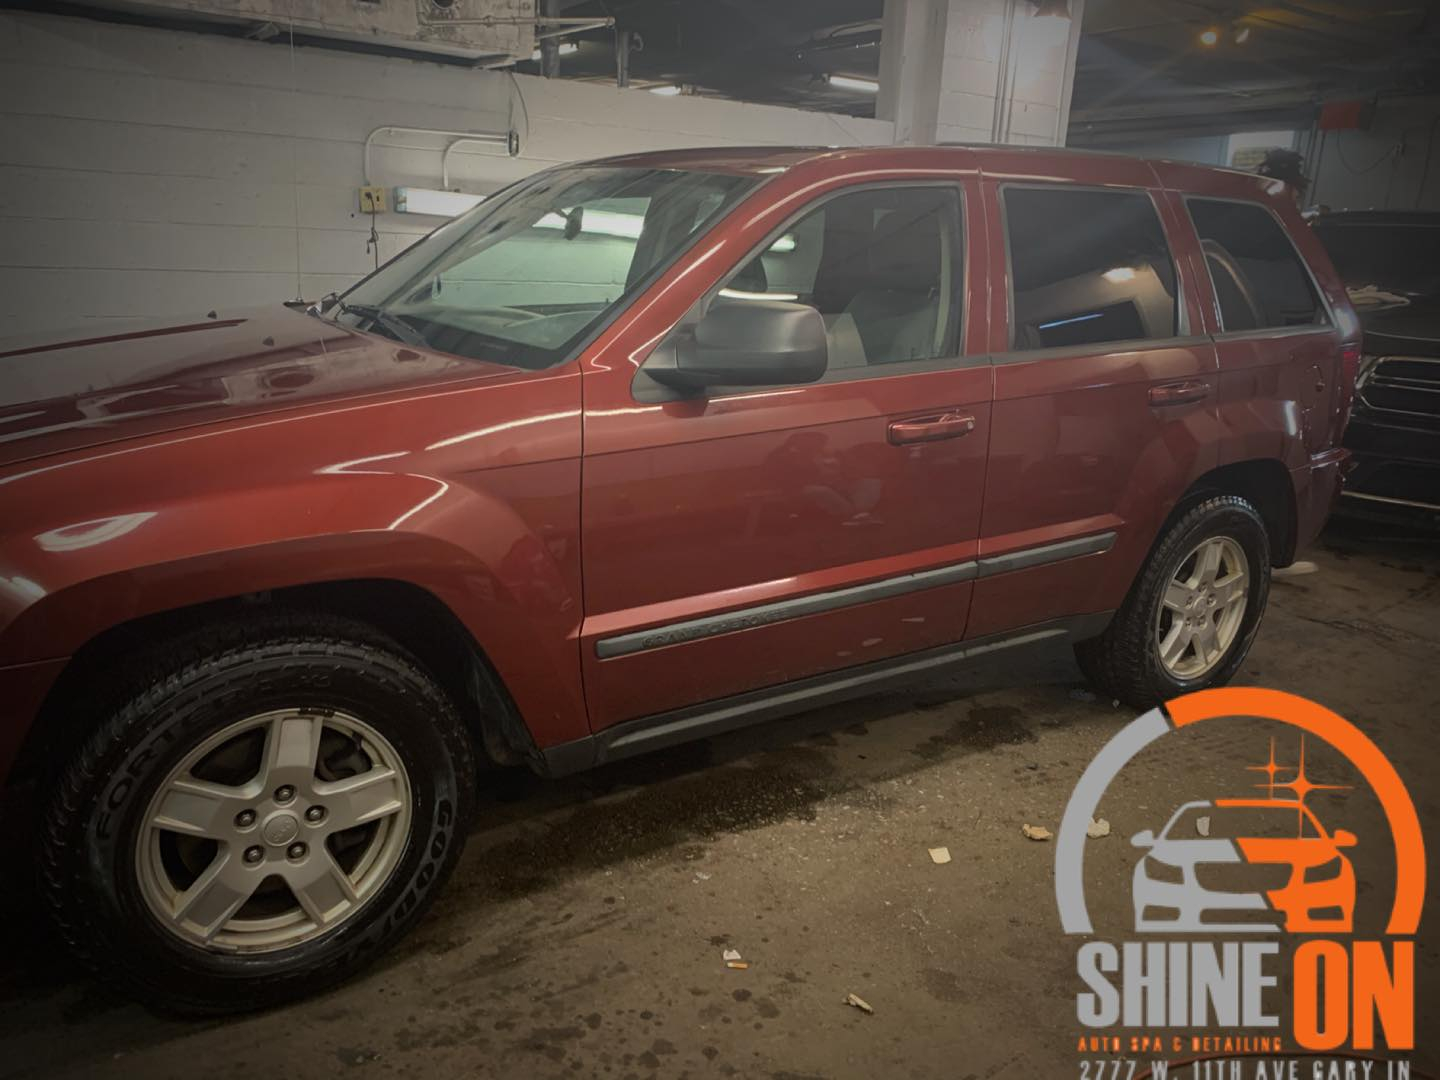 Auto Detailing in Gary, IN Shine On Auto Spa and Detailing Gary (219)487-5373